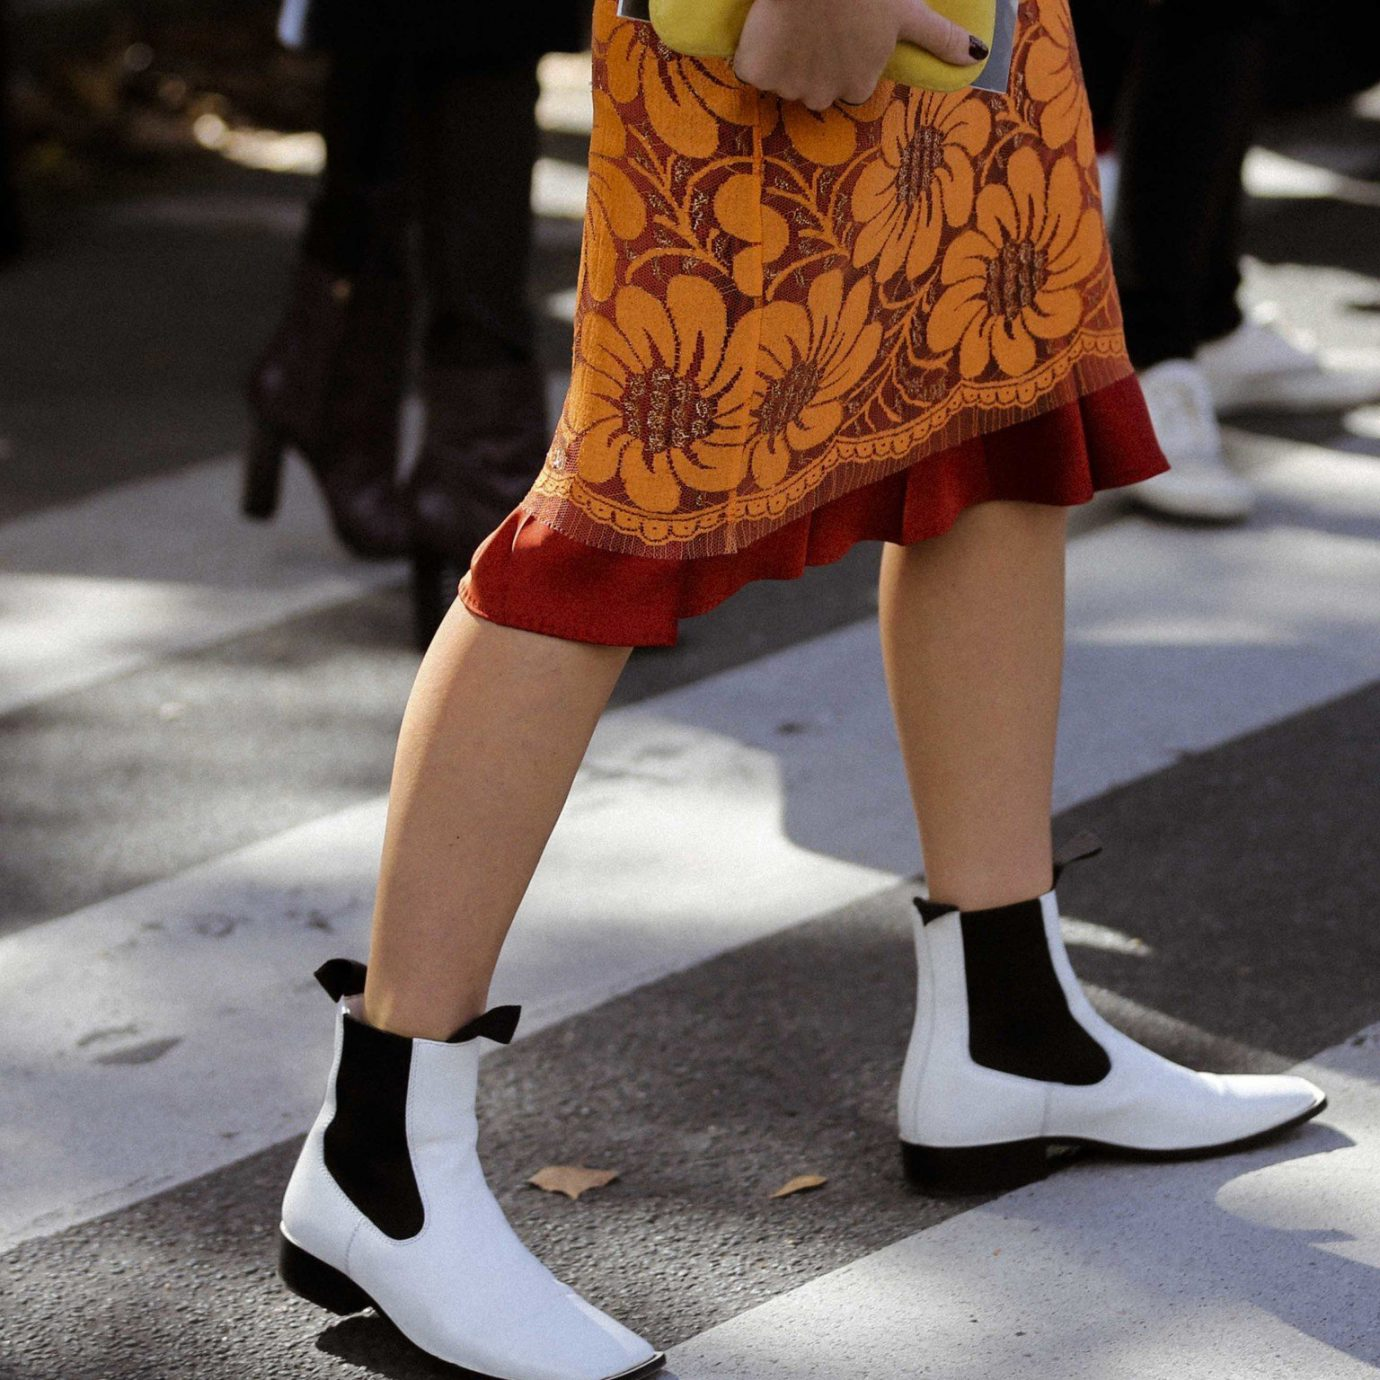 fashionable woman in white boots crossing the streeet on a fall day, fall boots, best boots for fall